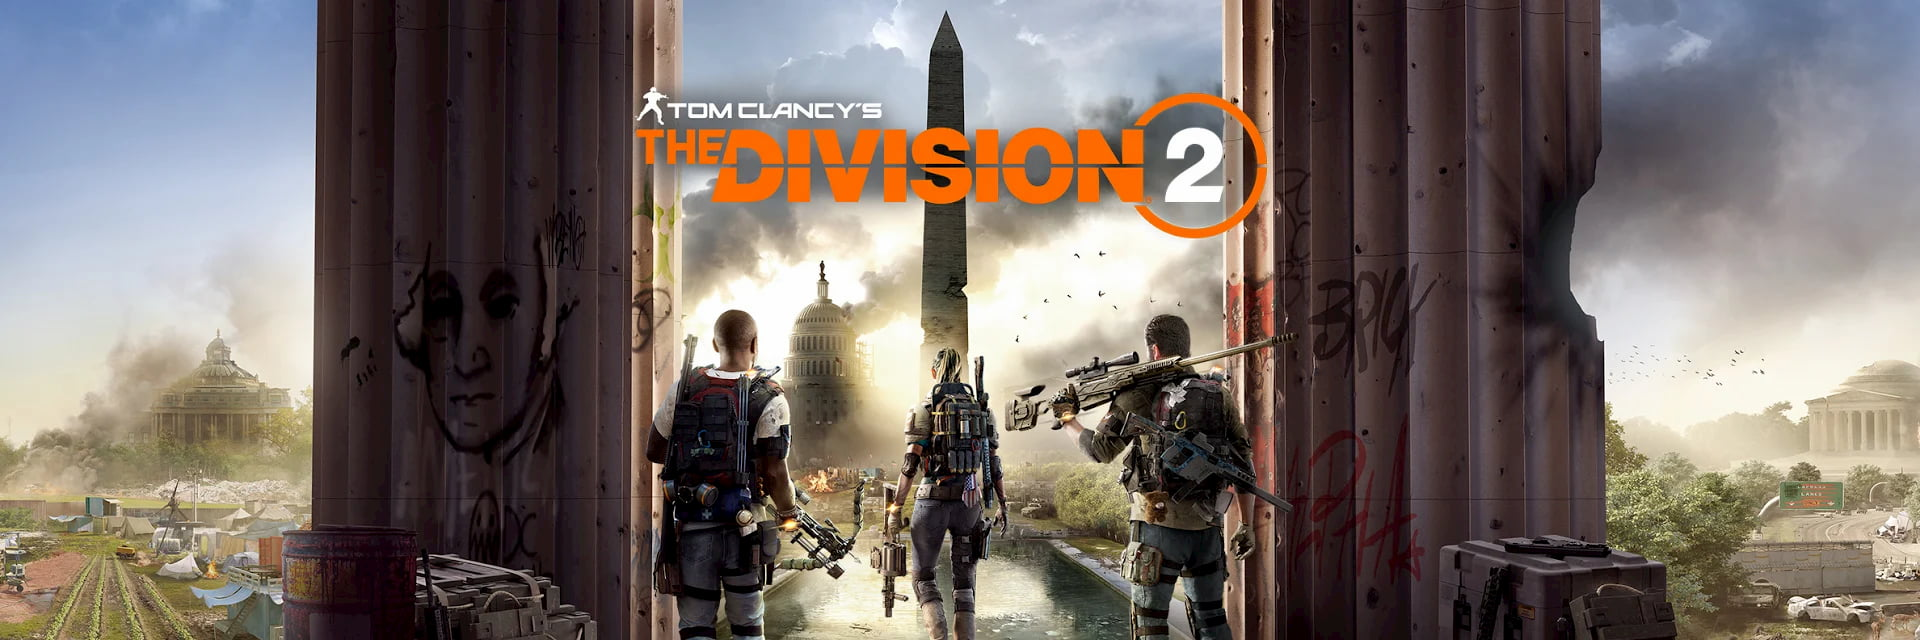 Tom Clancy's The Division 2 launches on Stadia and is crazy-cheap for Pro subscribers